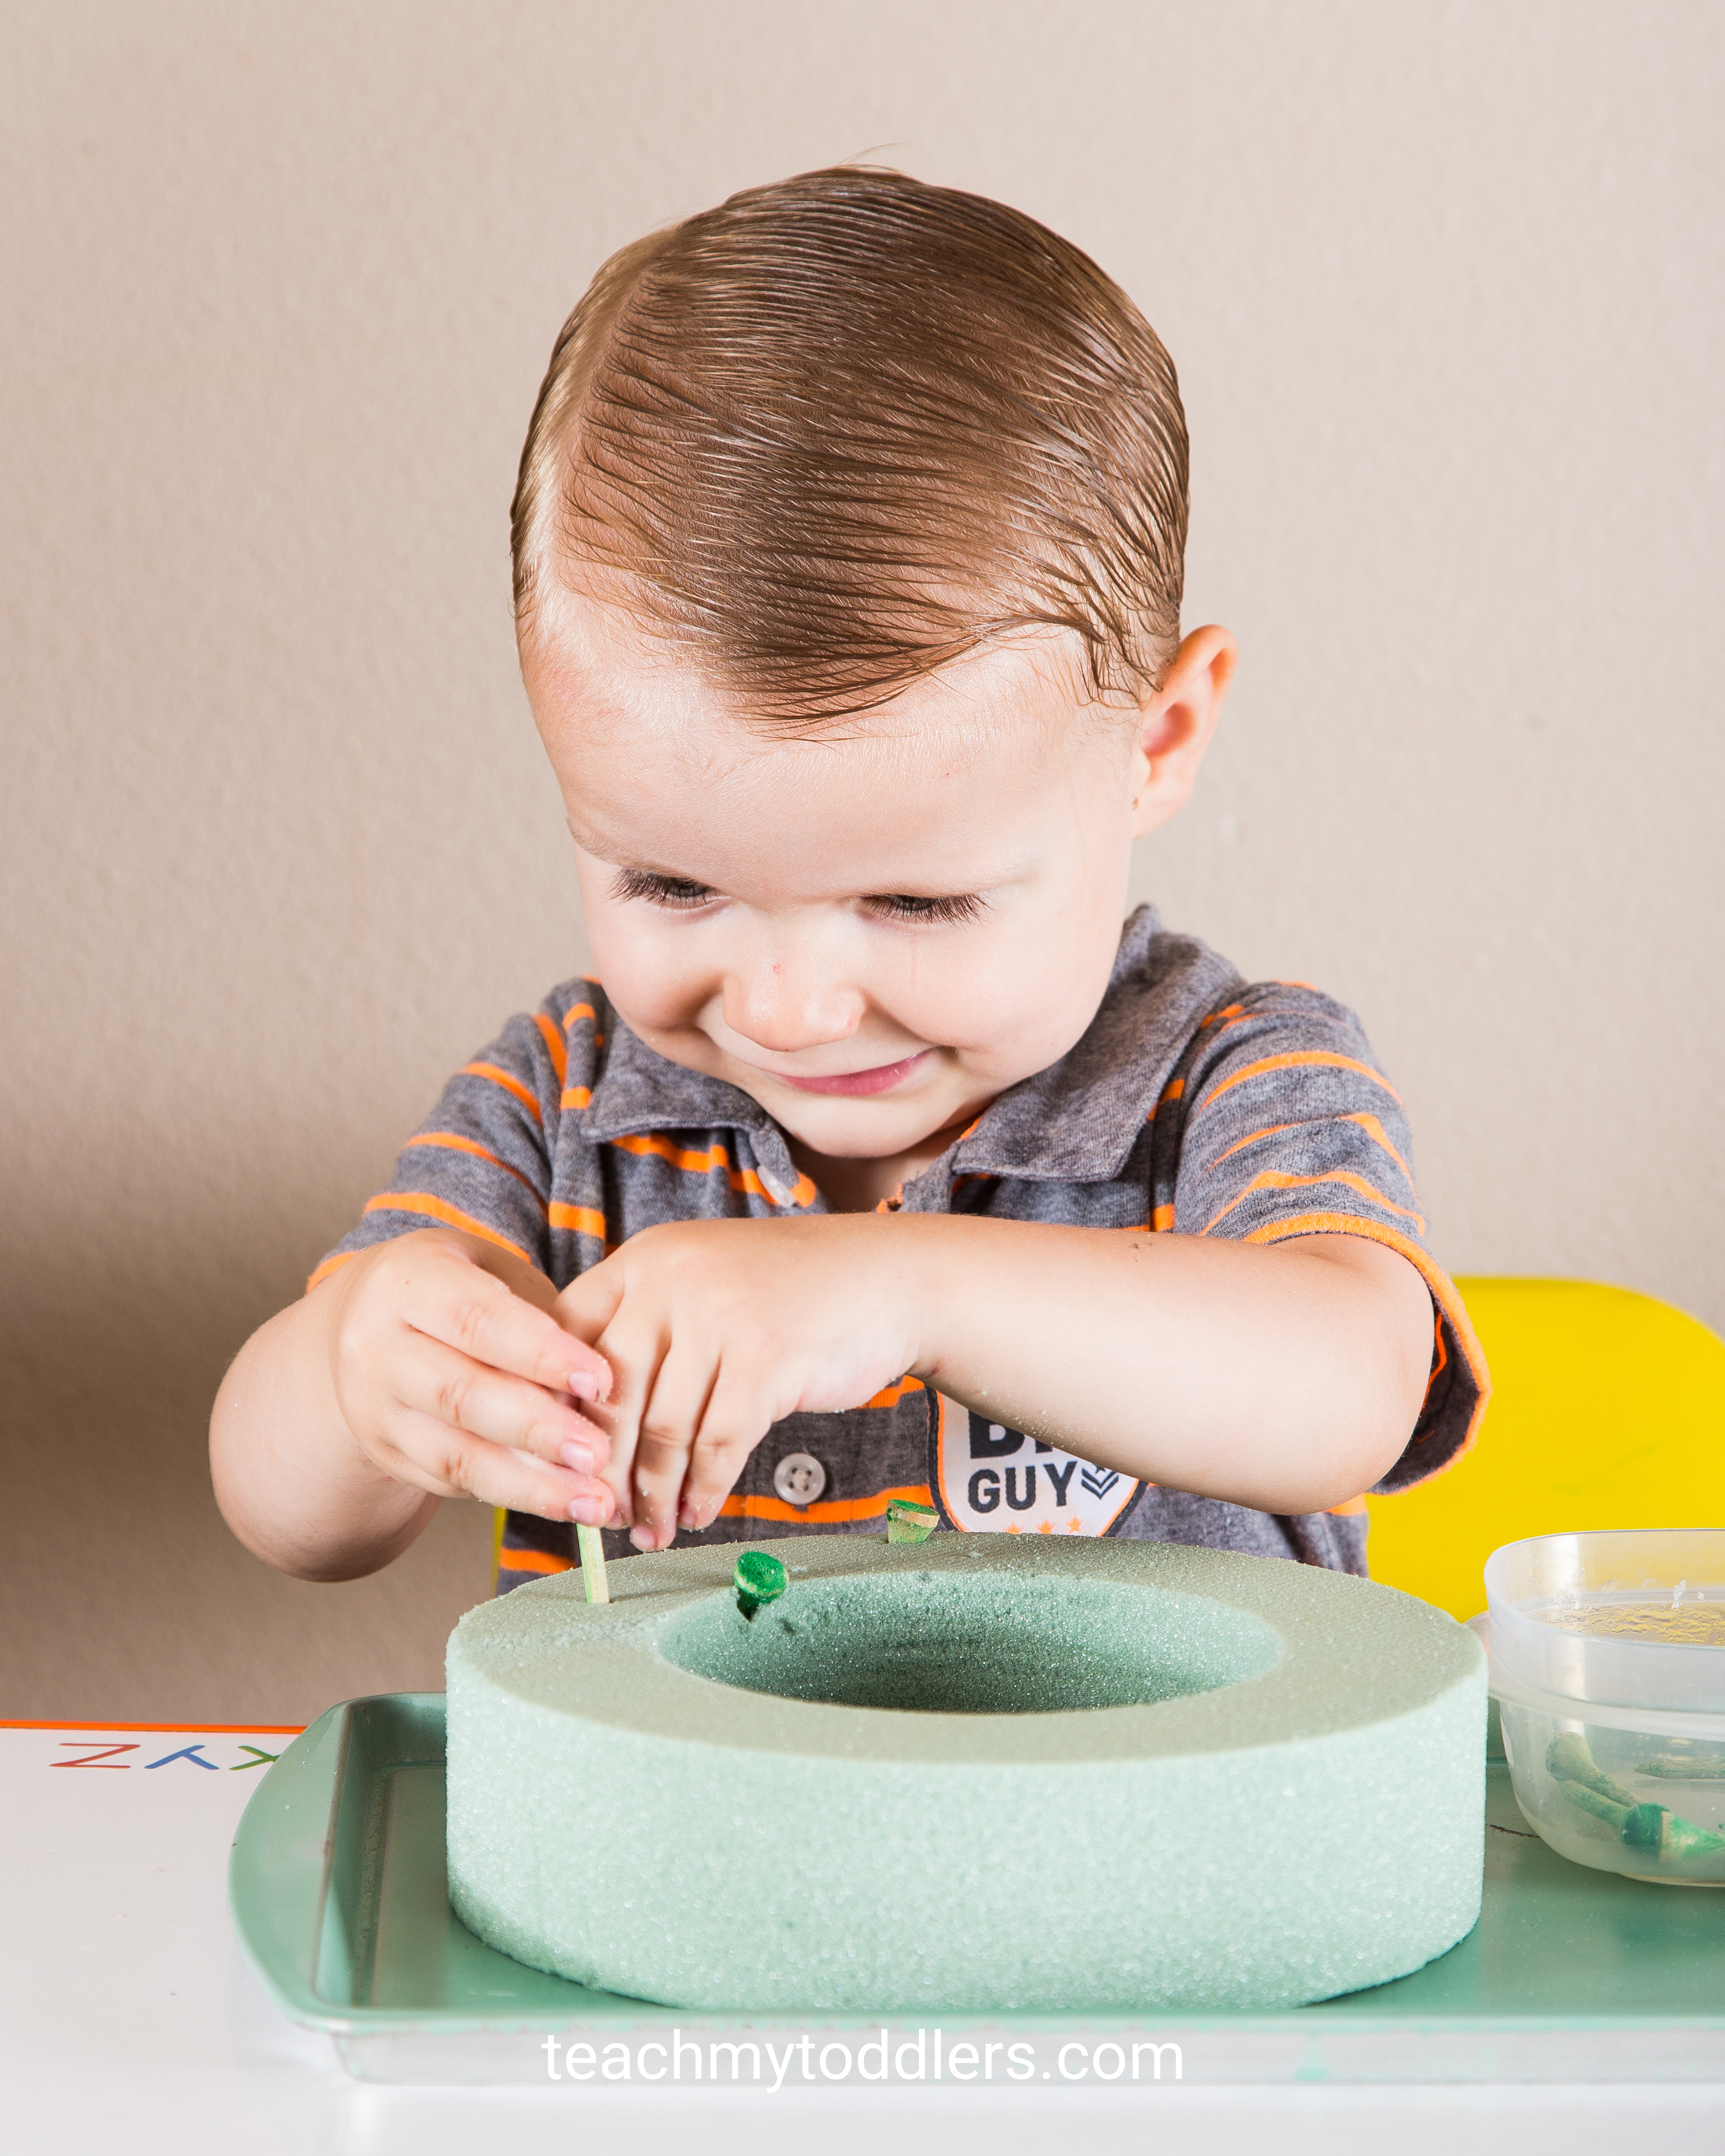 These green tot trays are a good way to teach your toddlers the color green